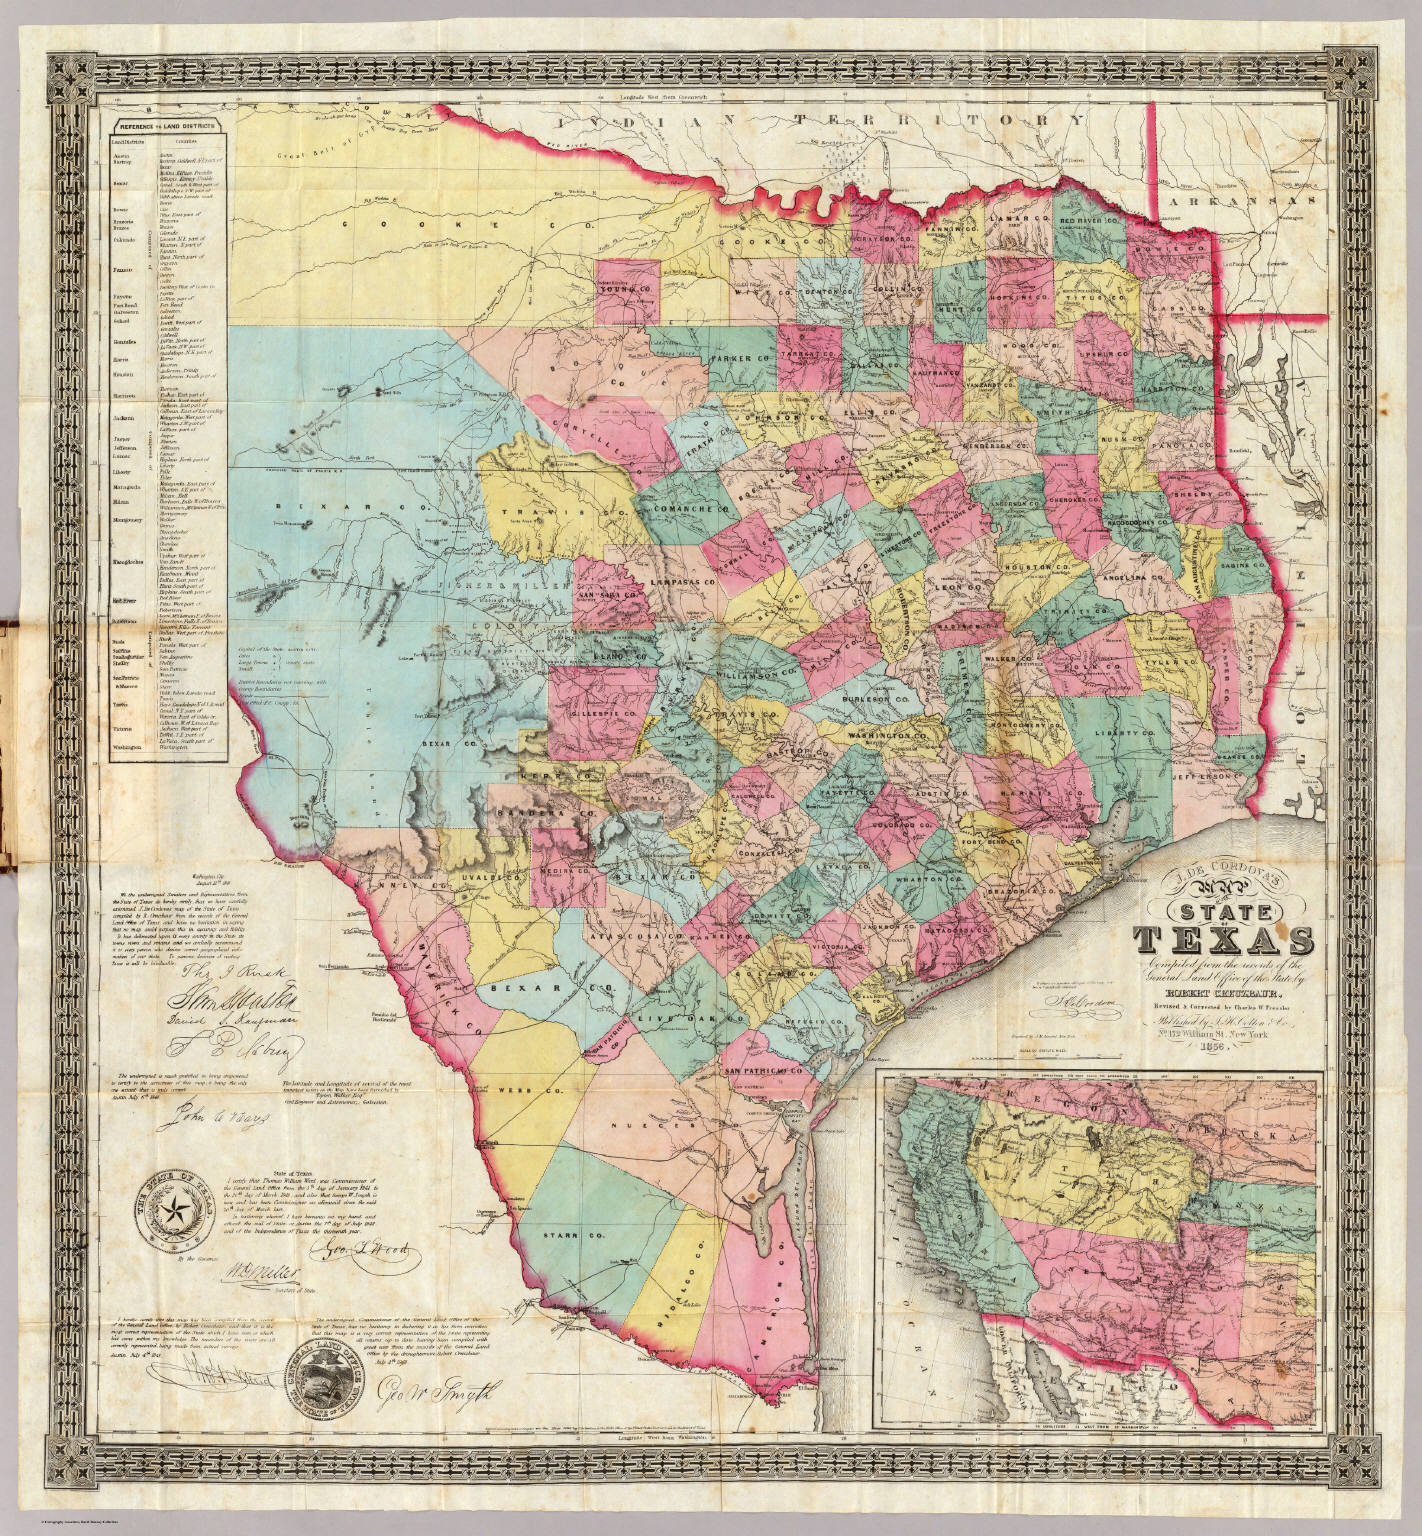 J De Cordovas Map Of The State Of Texas David Rumsey - State of texas map